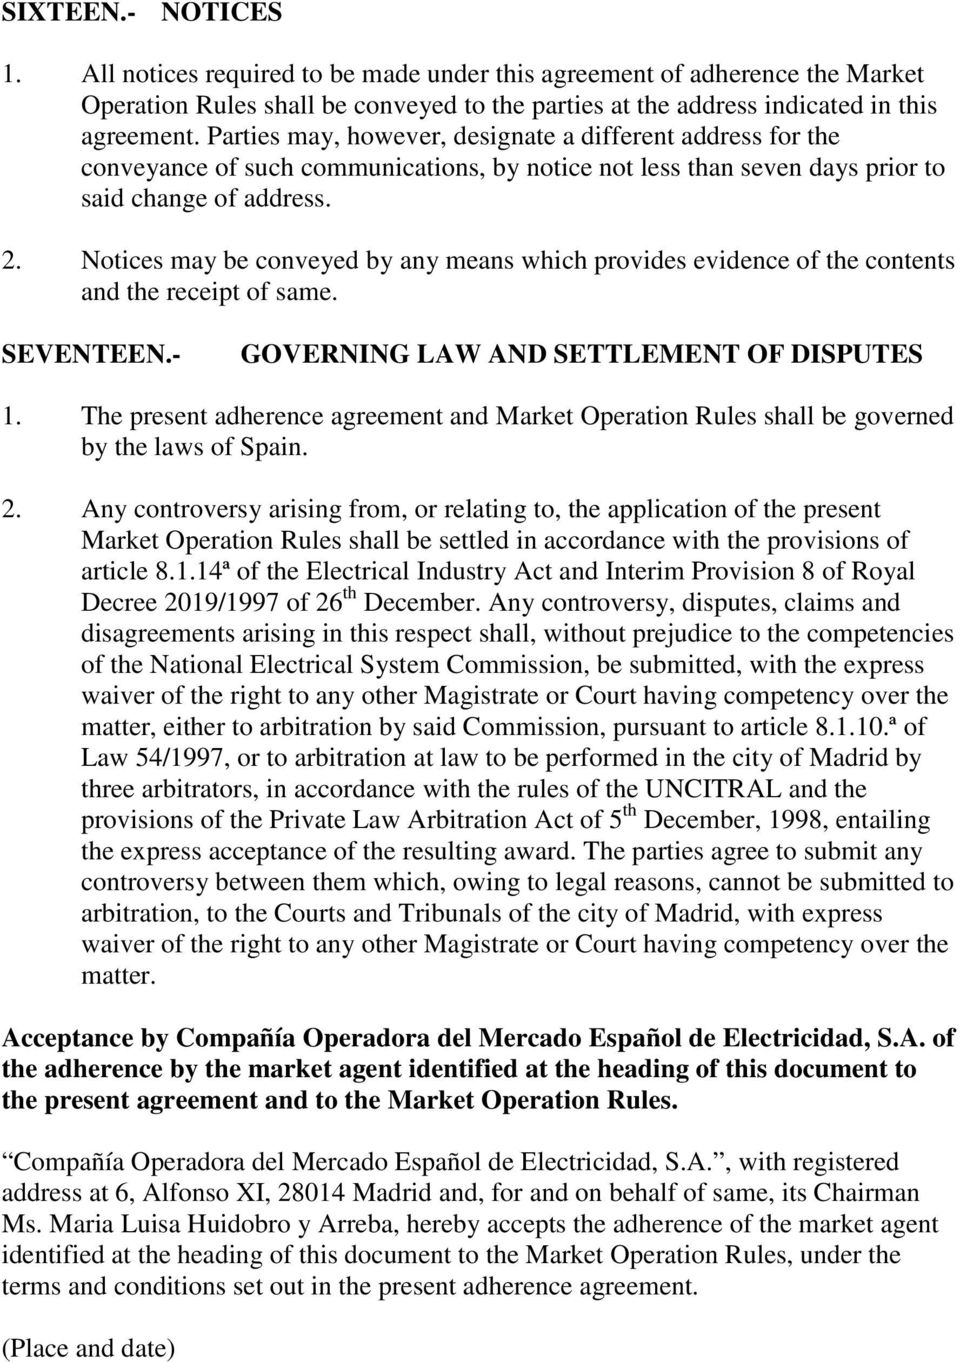 Notices may be conveyed by any means which provides evidence of the contents and the receipt of same. SEVENTEEN.- GOVERNING LAW AND SETTLEMENT OF DISPUTES 1.